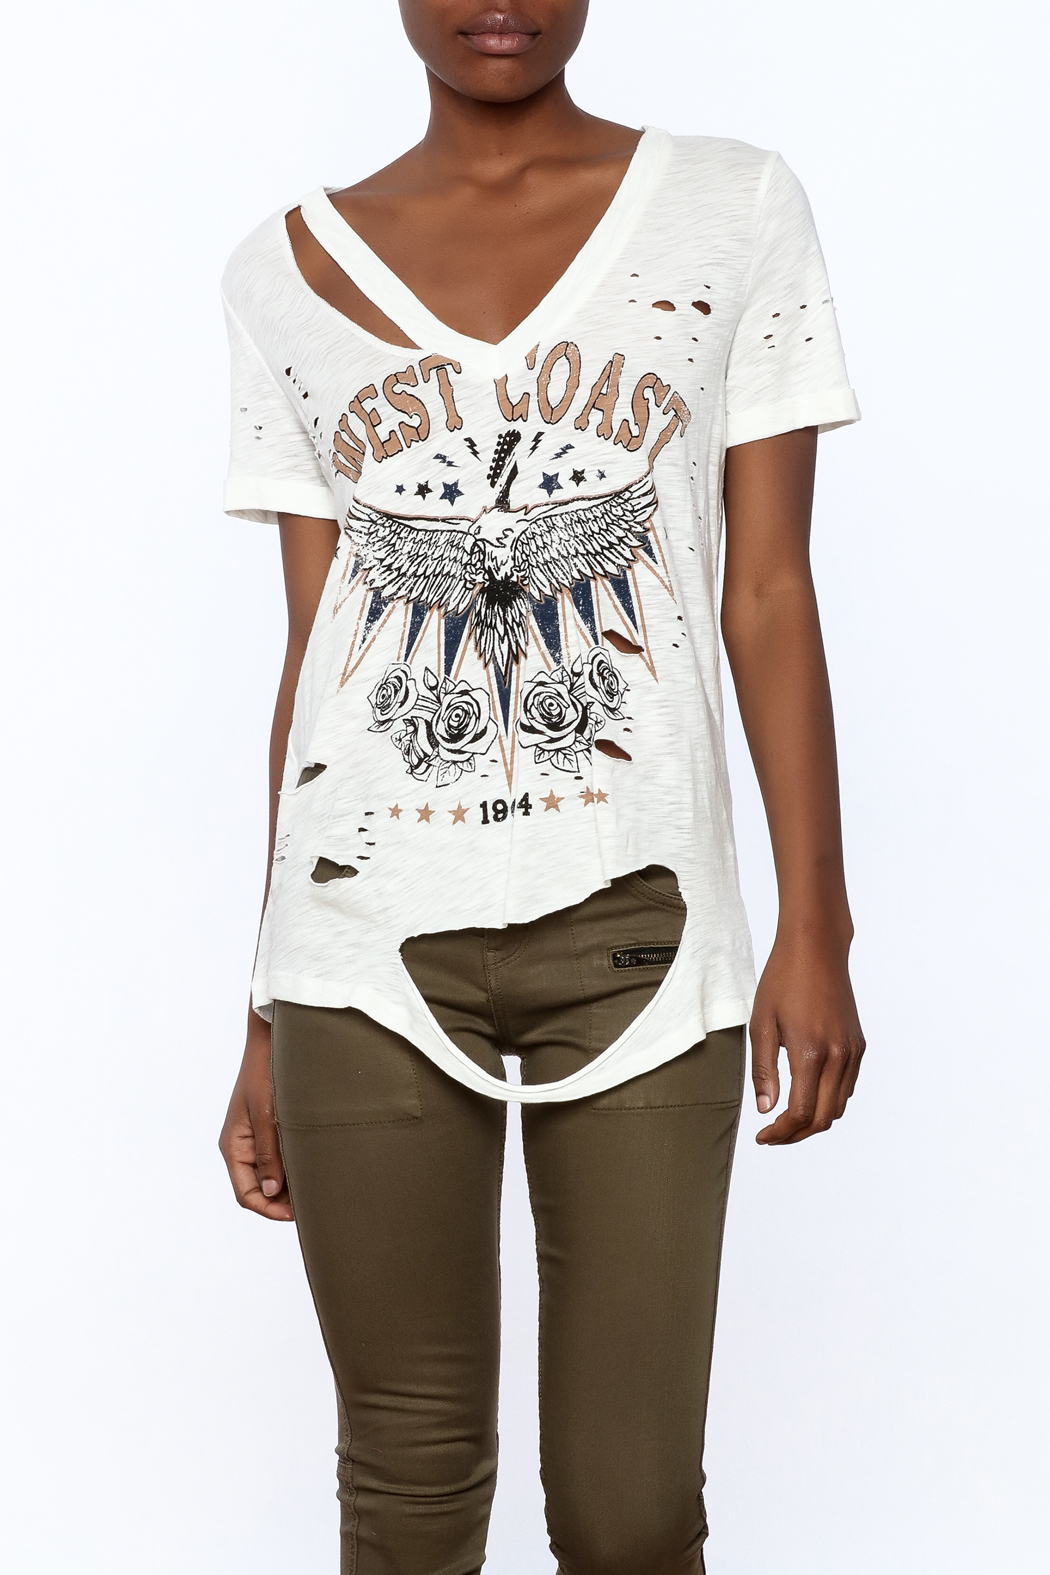 Emory Park Distressed Print Tee From Manhattan By Dor L